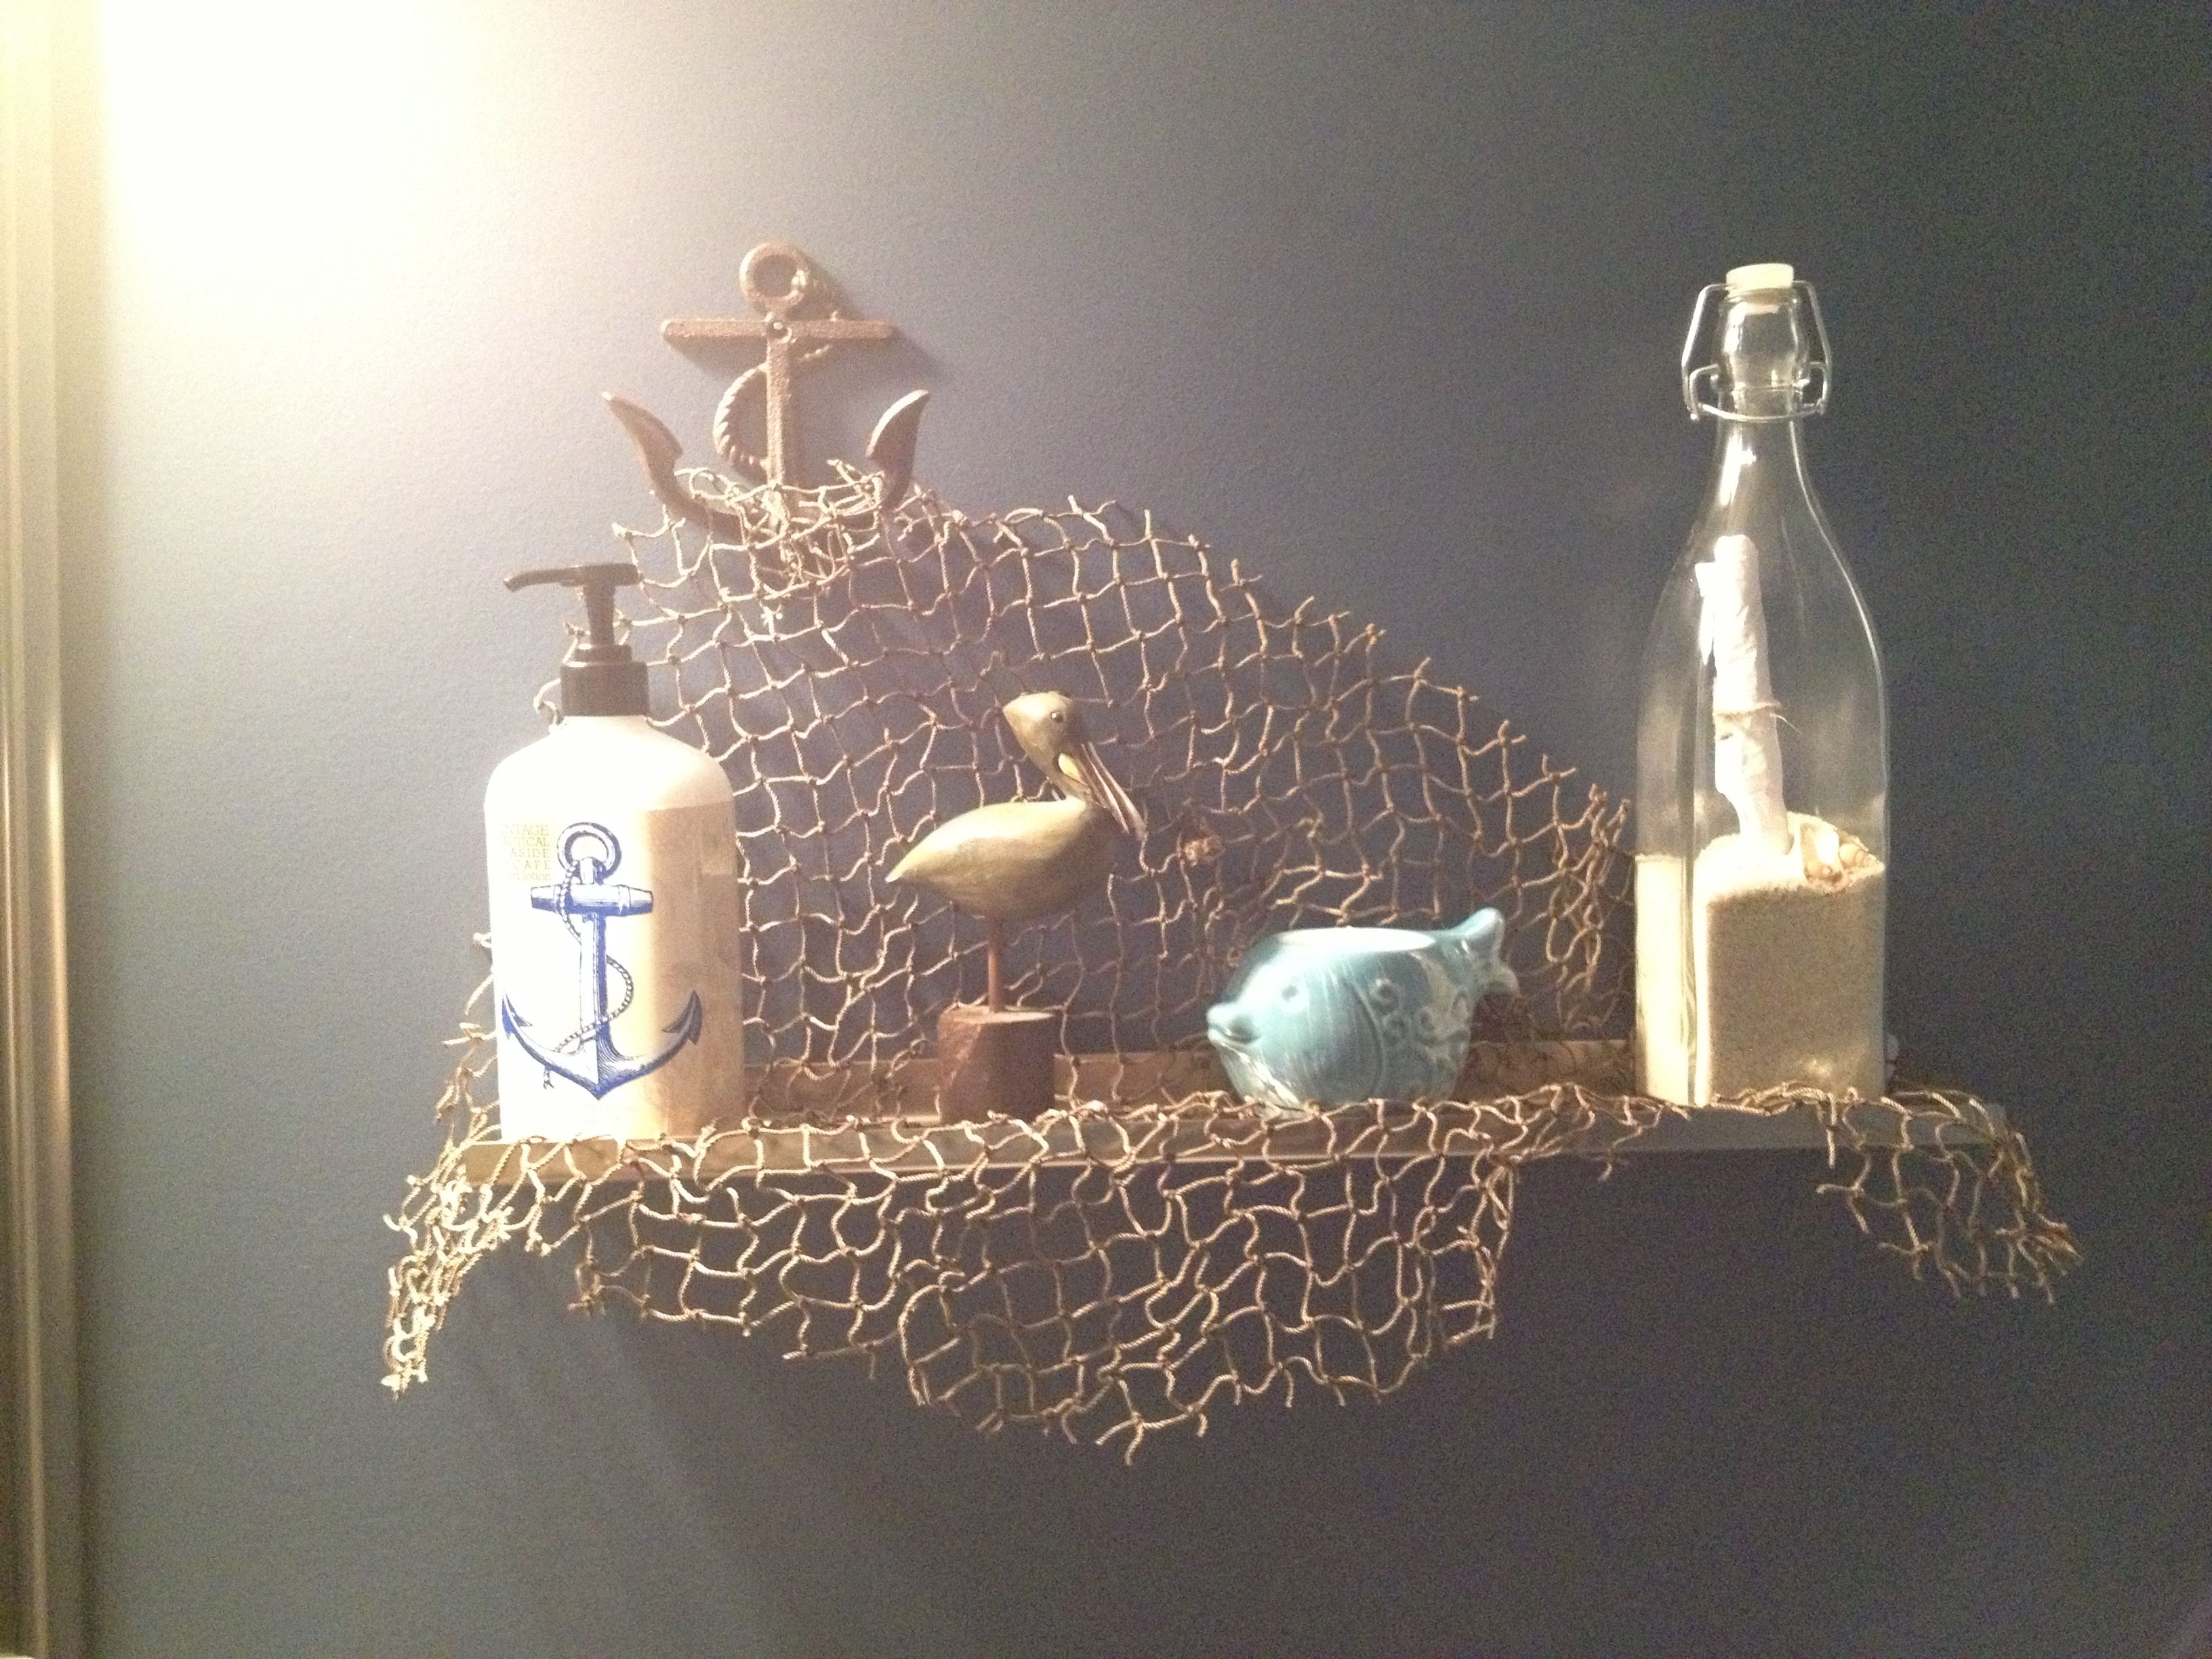 Nautical themed bathroom - Cute Shelf Decor For A Nautical Bathroom Make Sure You Put A Real Message In